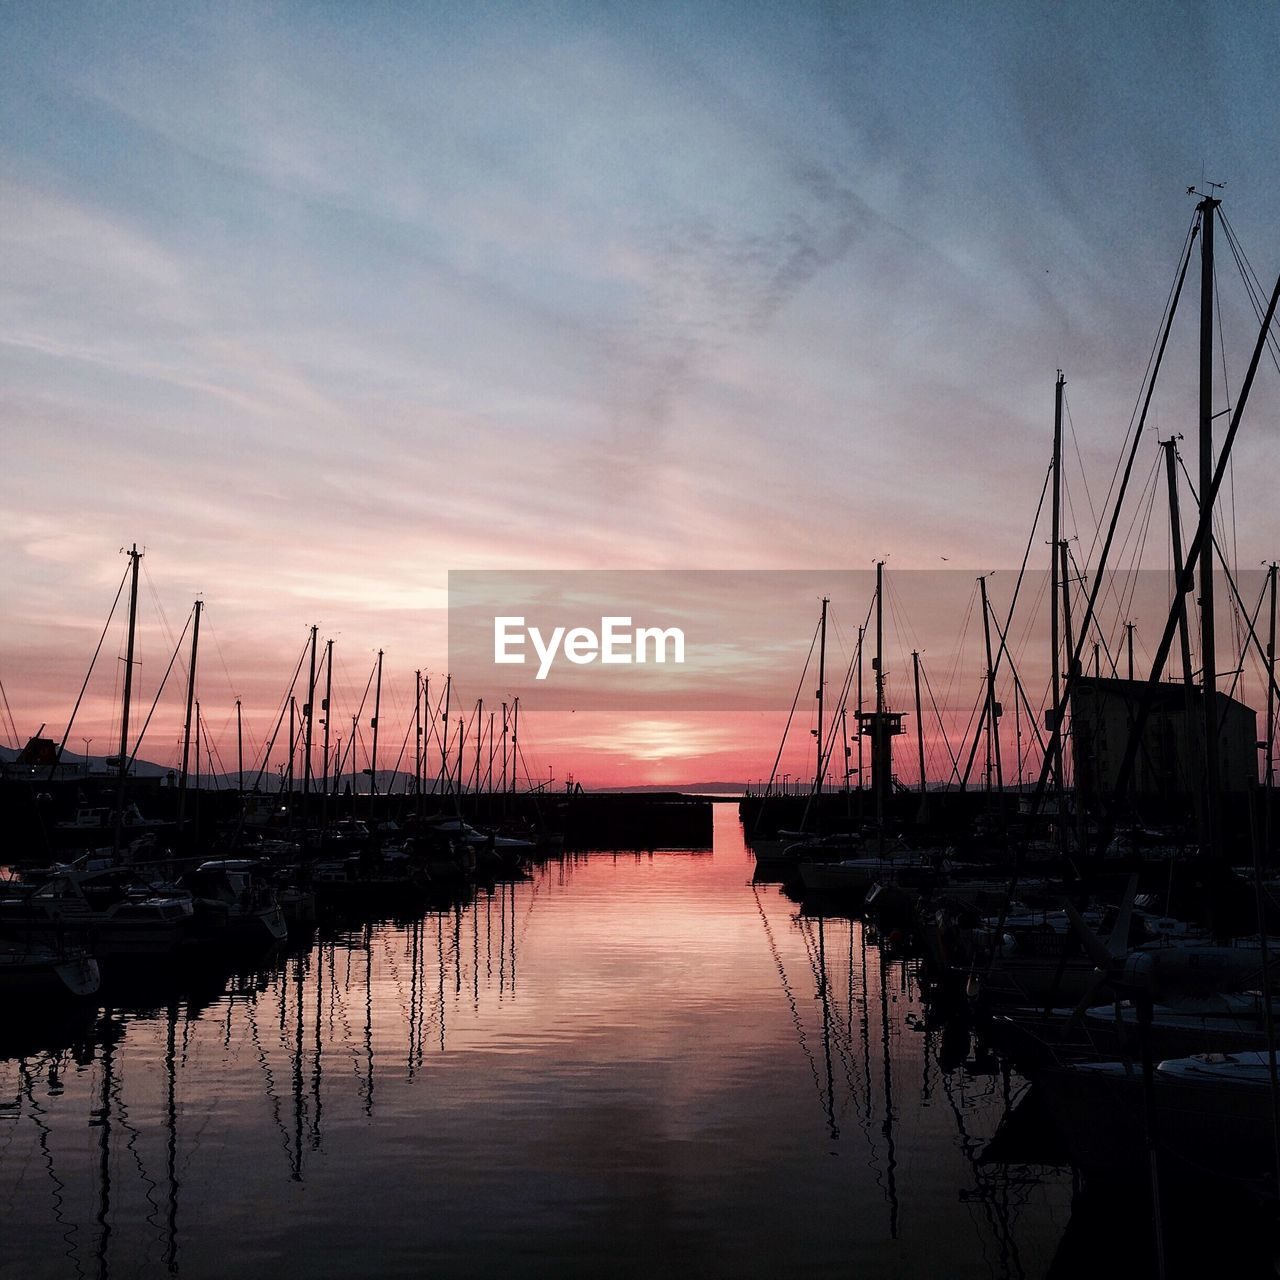 reflection, sunset, sky, nautical vessel, water, tranquility, moored, scenics, mast, tranquil scene, sailboat, harbor, no people, cloud - sky, nature, transportation, beauty in nature, mode of transport, outdoors, lake, marina, waterfront, travel destinations, silhouette, jetty, yacht, day